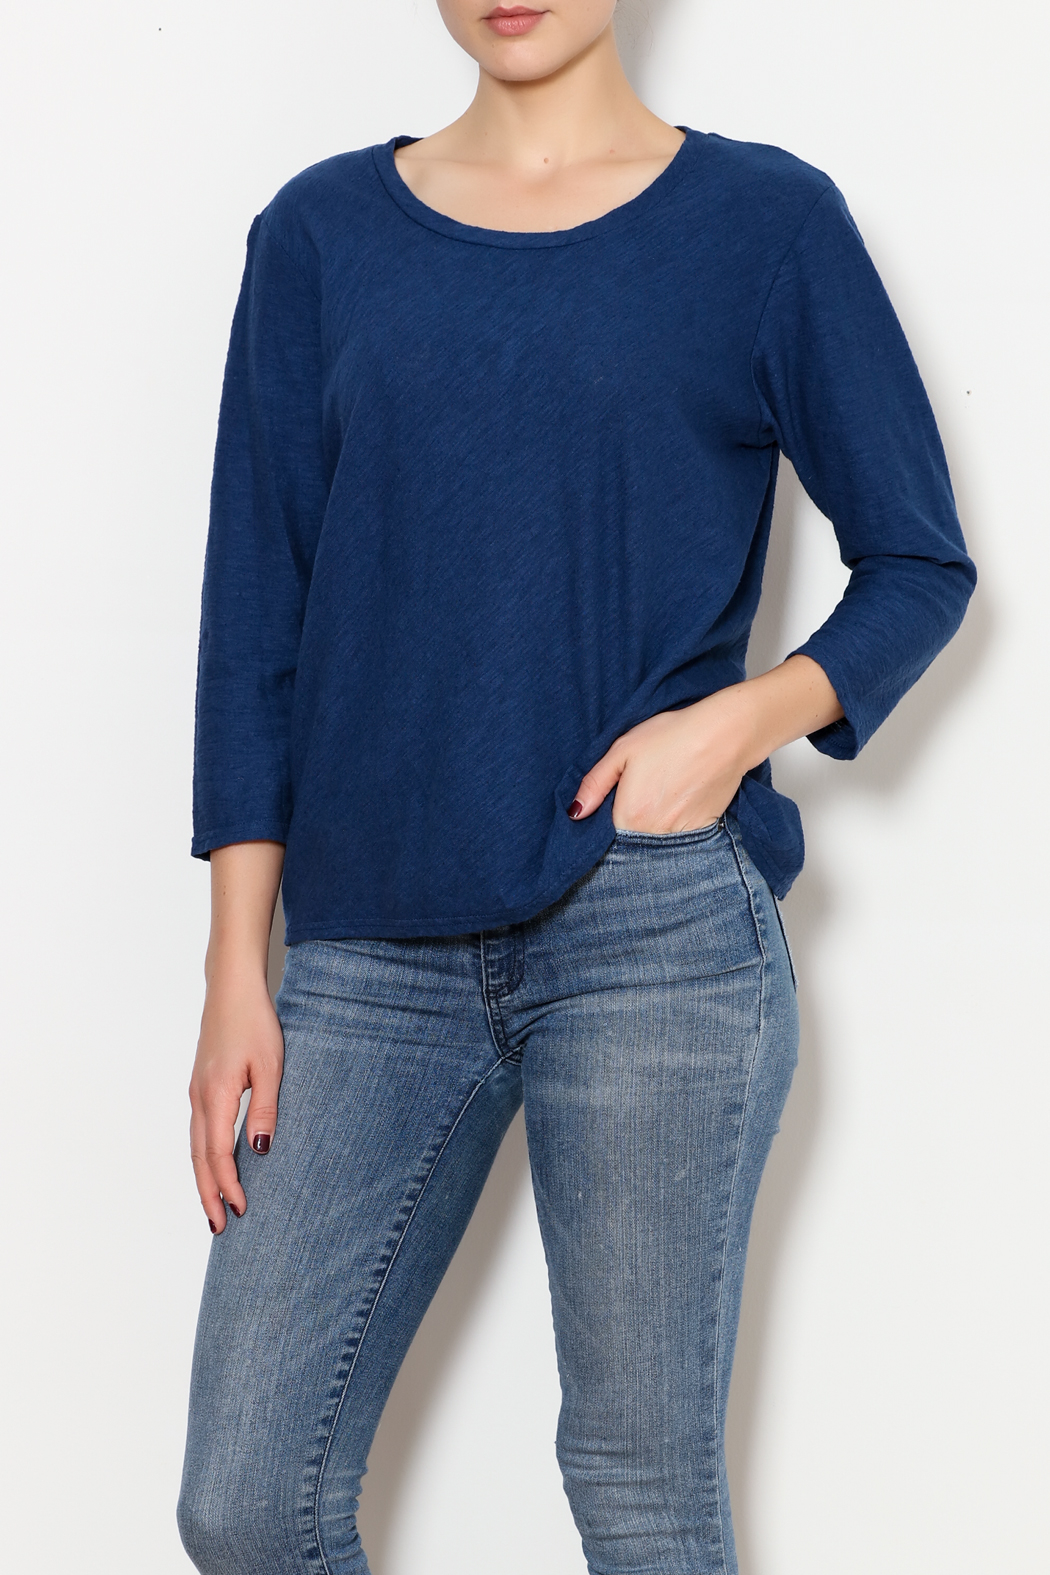 Cut Loose 3/4 Sleeve Bias Tee - Front Cropped Image